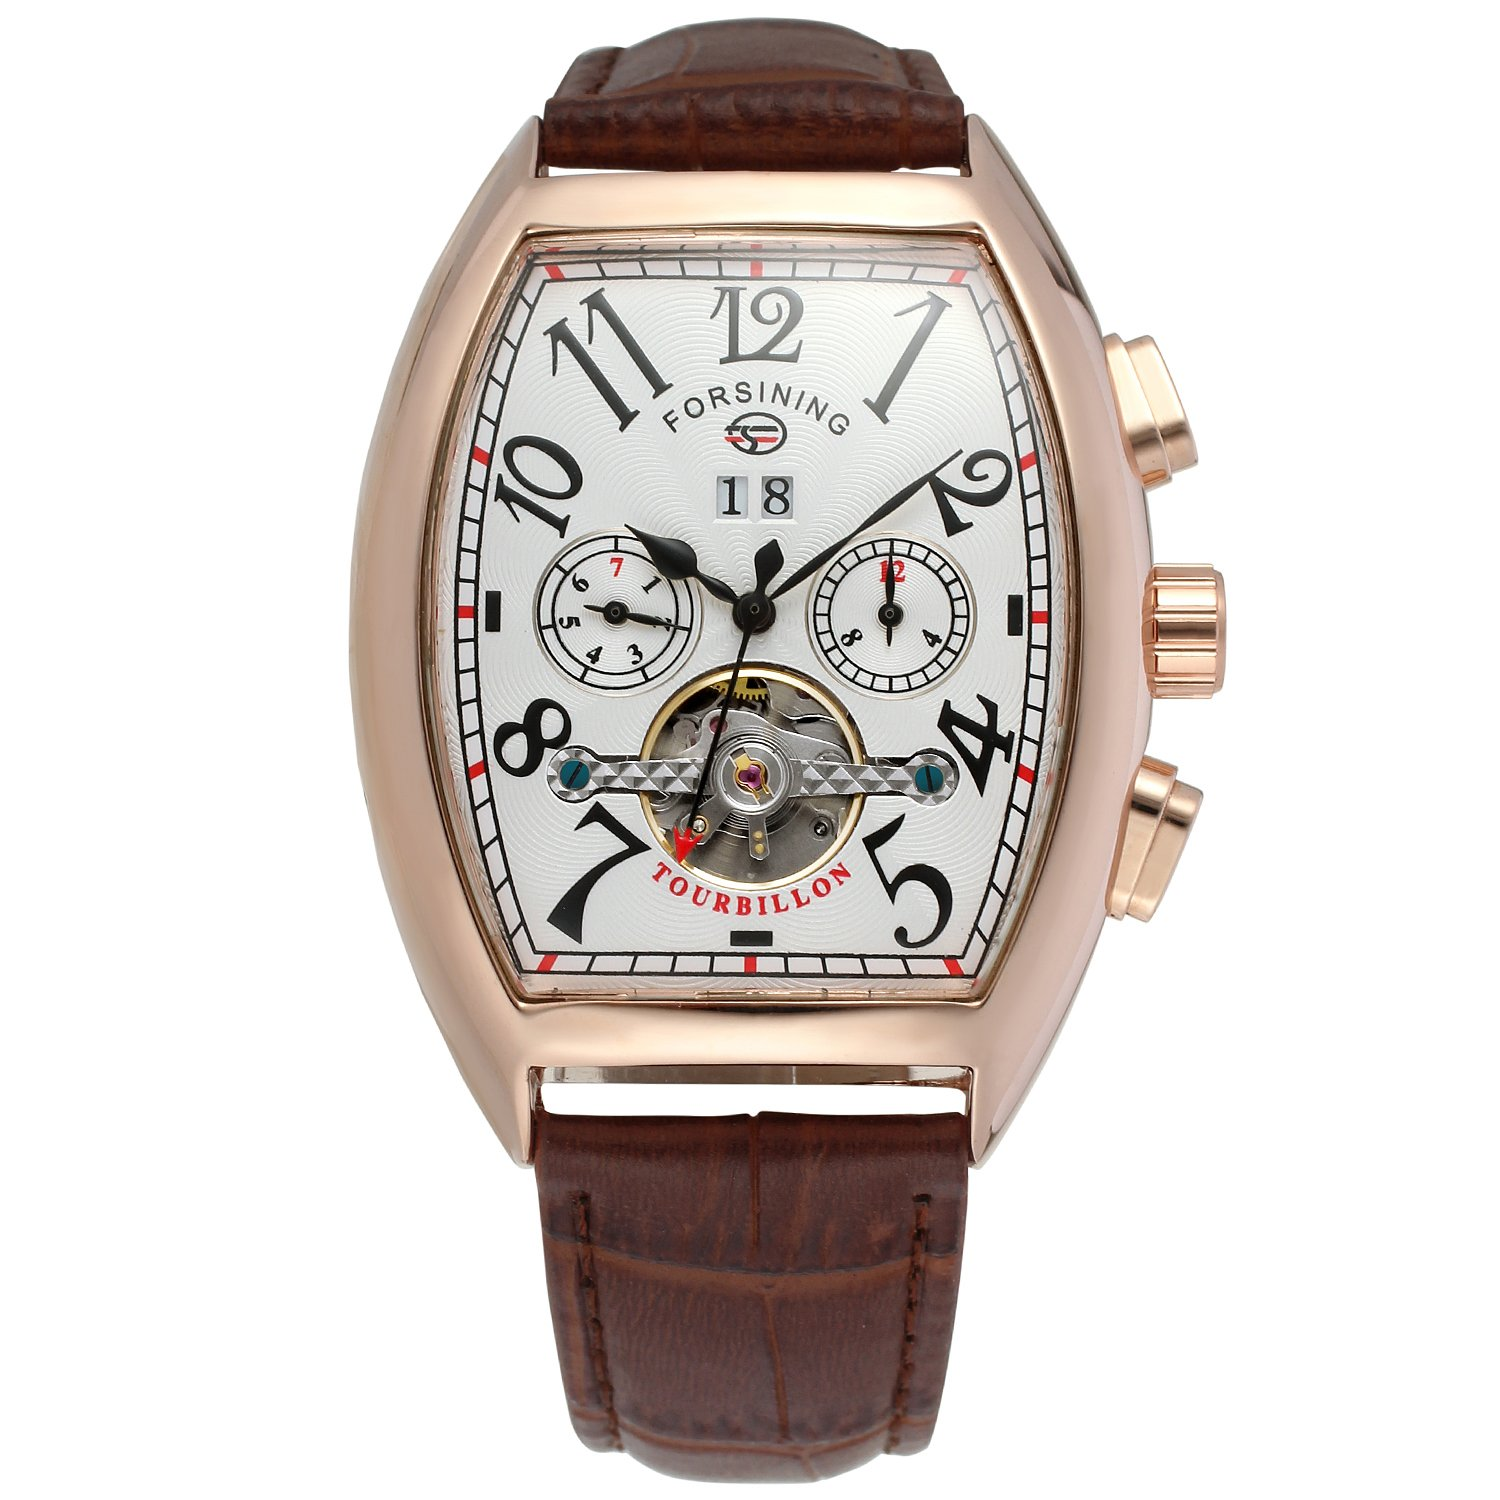 Amazon.com: Forsining Mens Automatic Self-winding Tourbillon Calendar Brand Learher Strap Collectiton Watch FSG9409M3R4: Watches